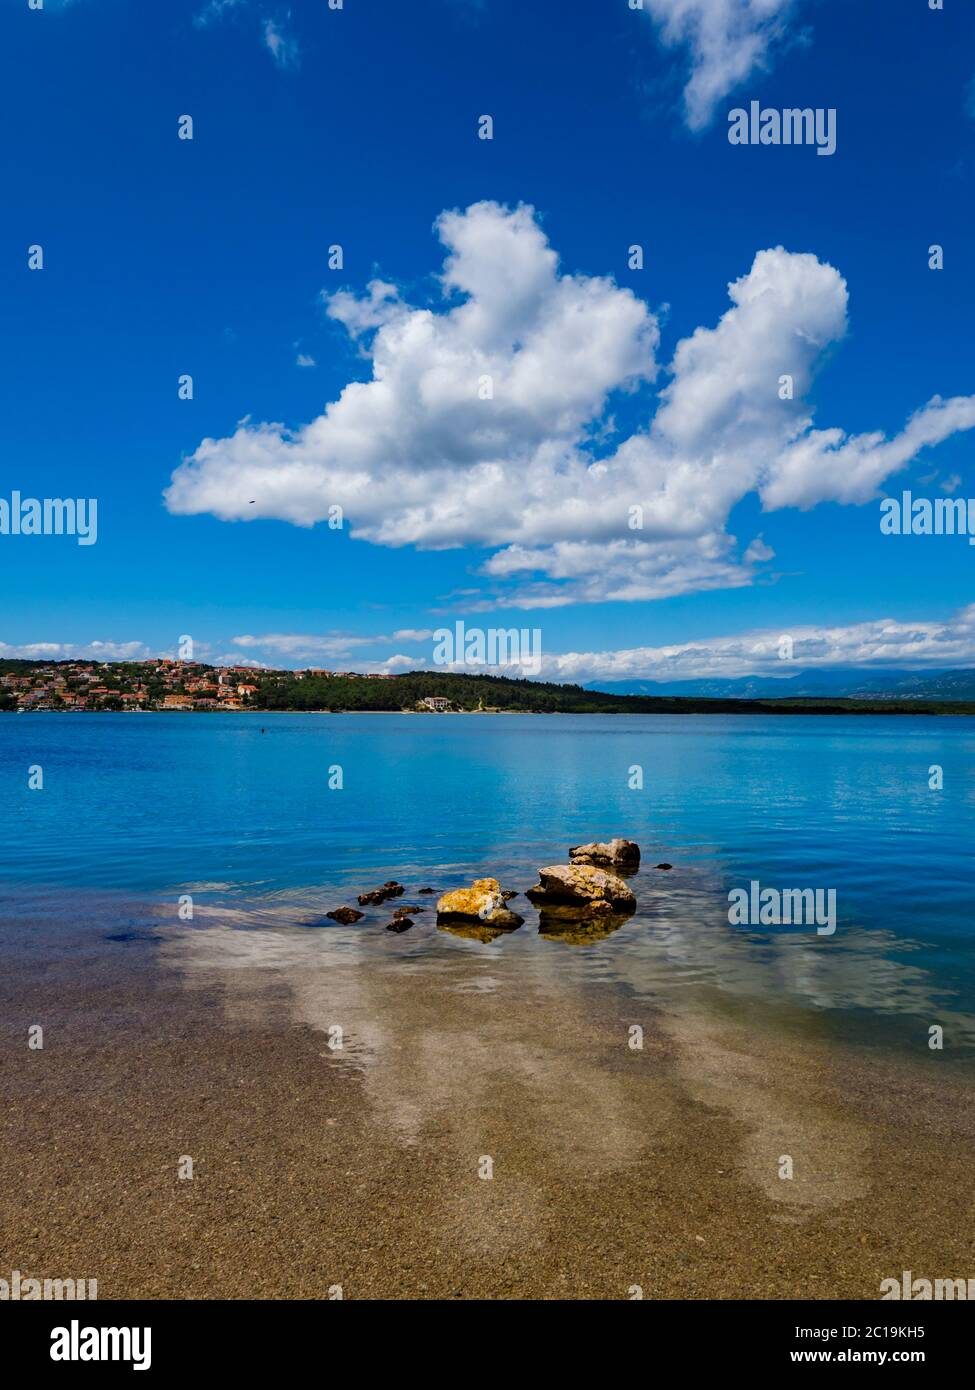 Pretty beach scenery in Soline on island Krk Croatia bunch of rocks protruding from sea surface immersed Summer clouds reflected in water Stock Photo